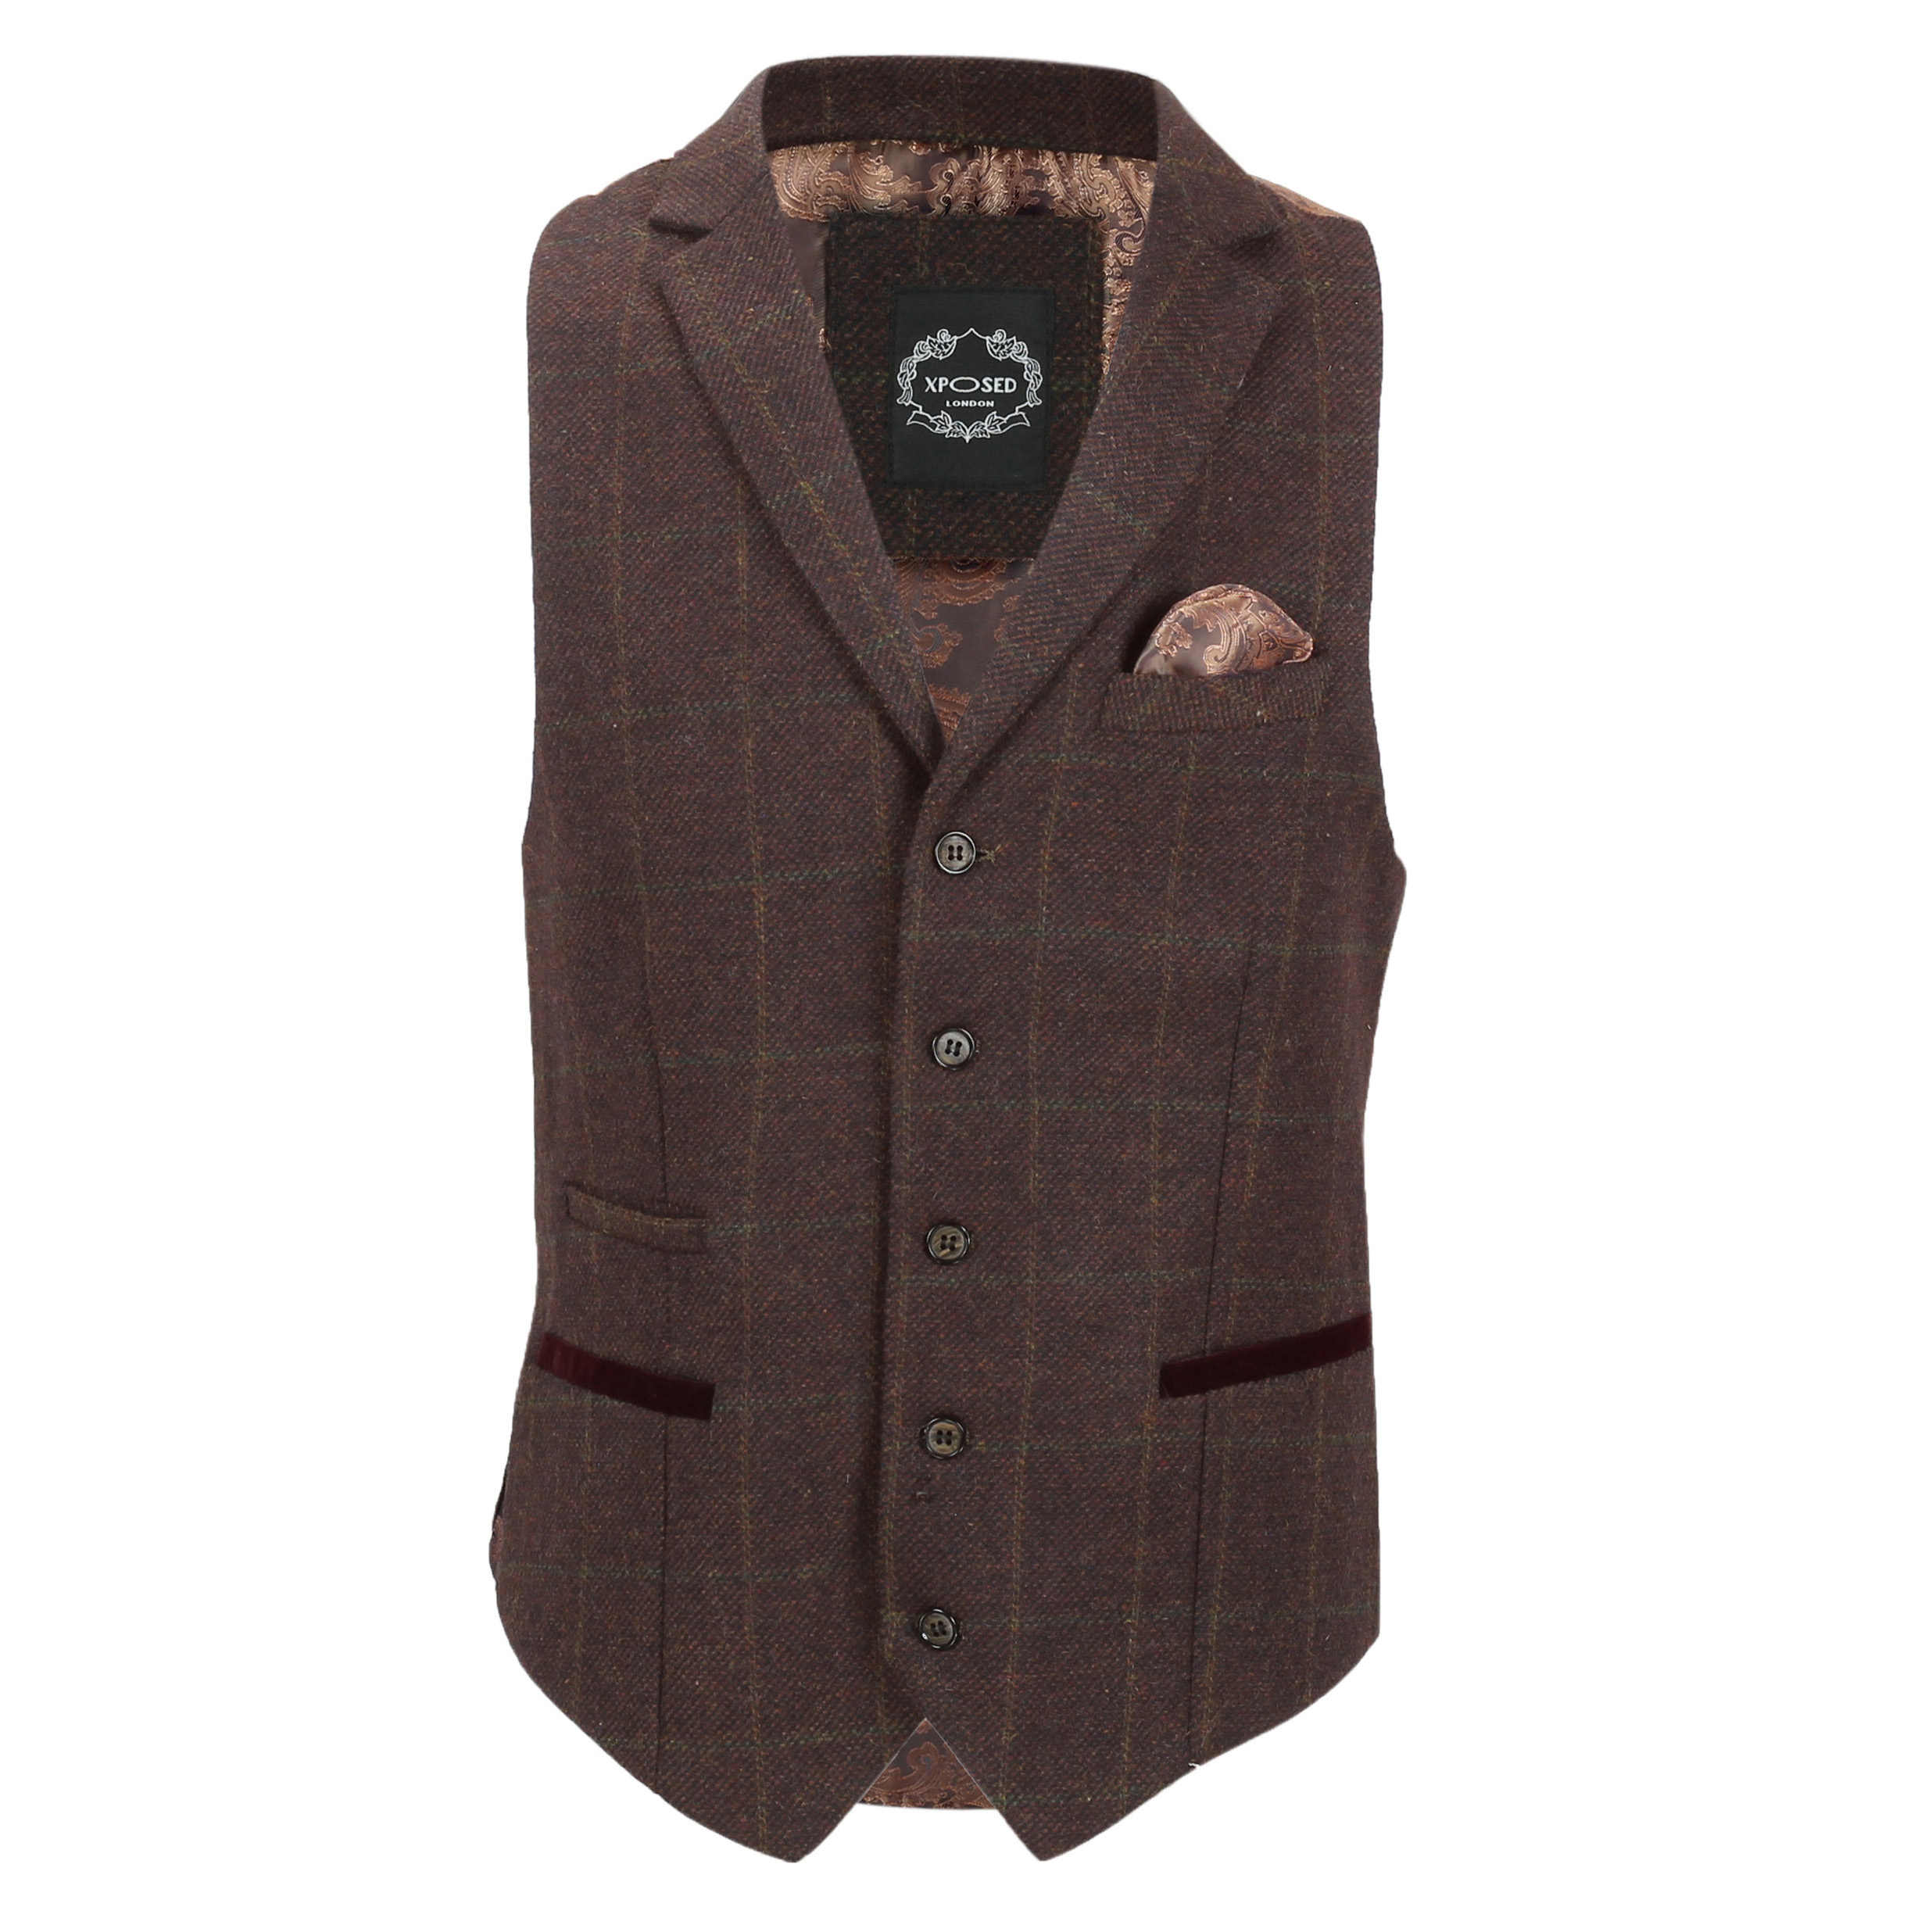 Mens-Tweed-Check-Waistcoat-Vintage-Herringbone-VelvetCollar-Lapel-Slim-Fit-Vest thumbnail 11